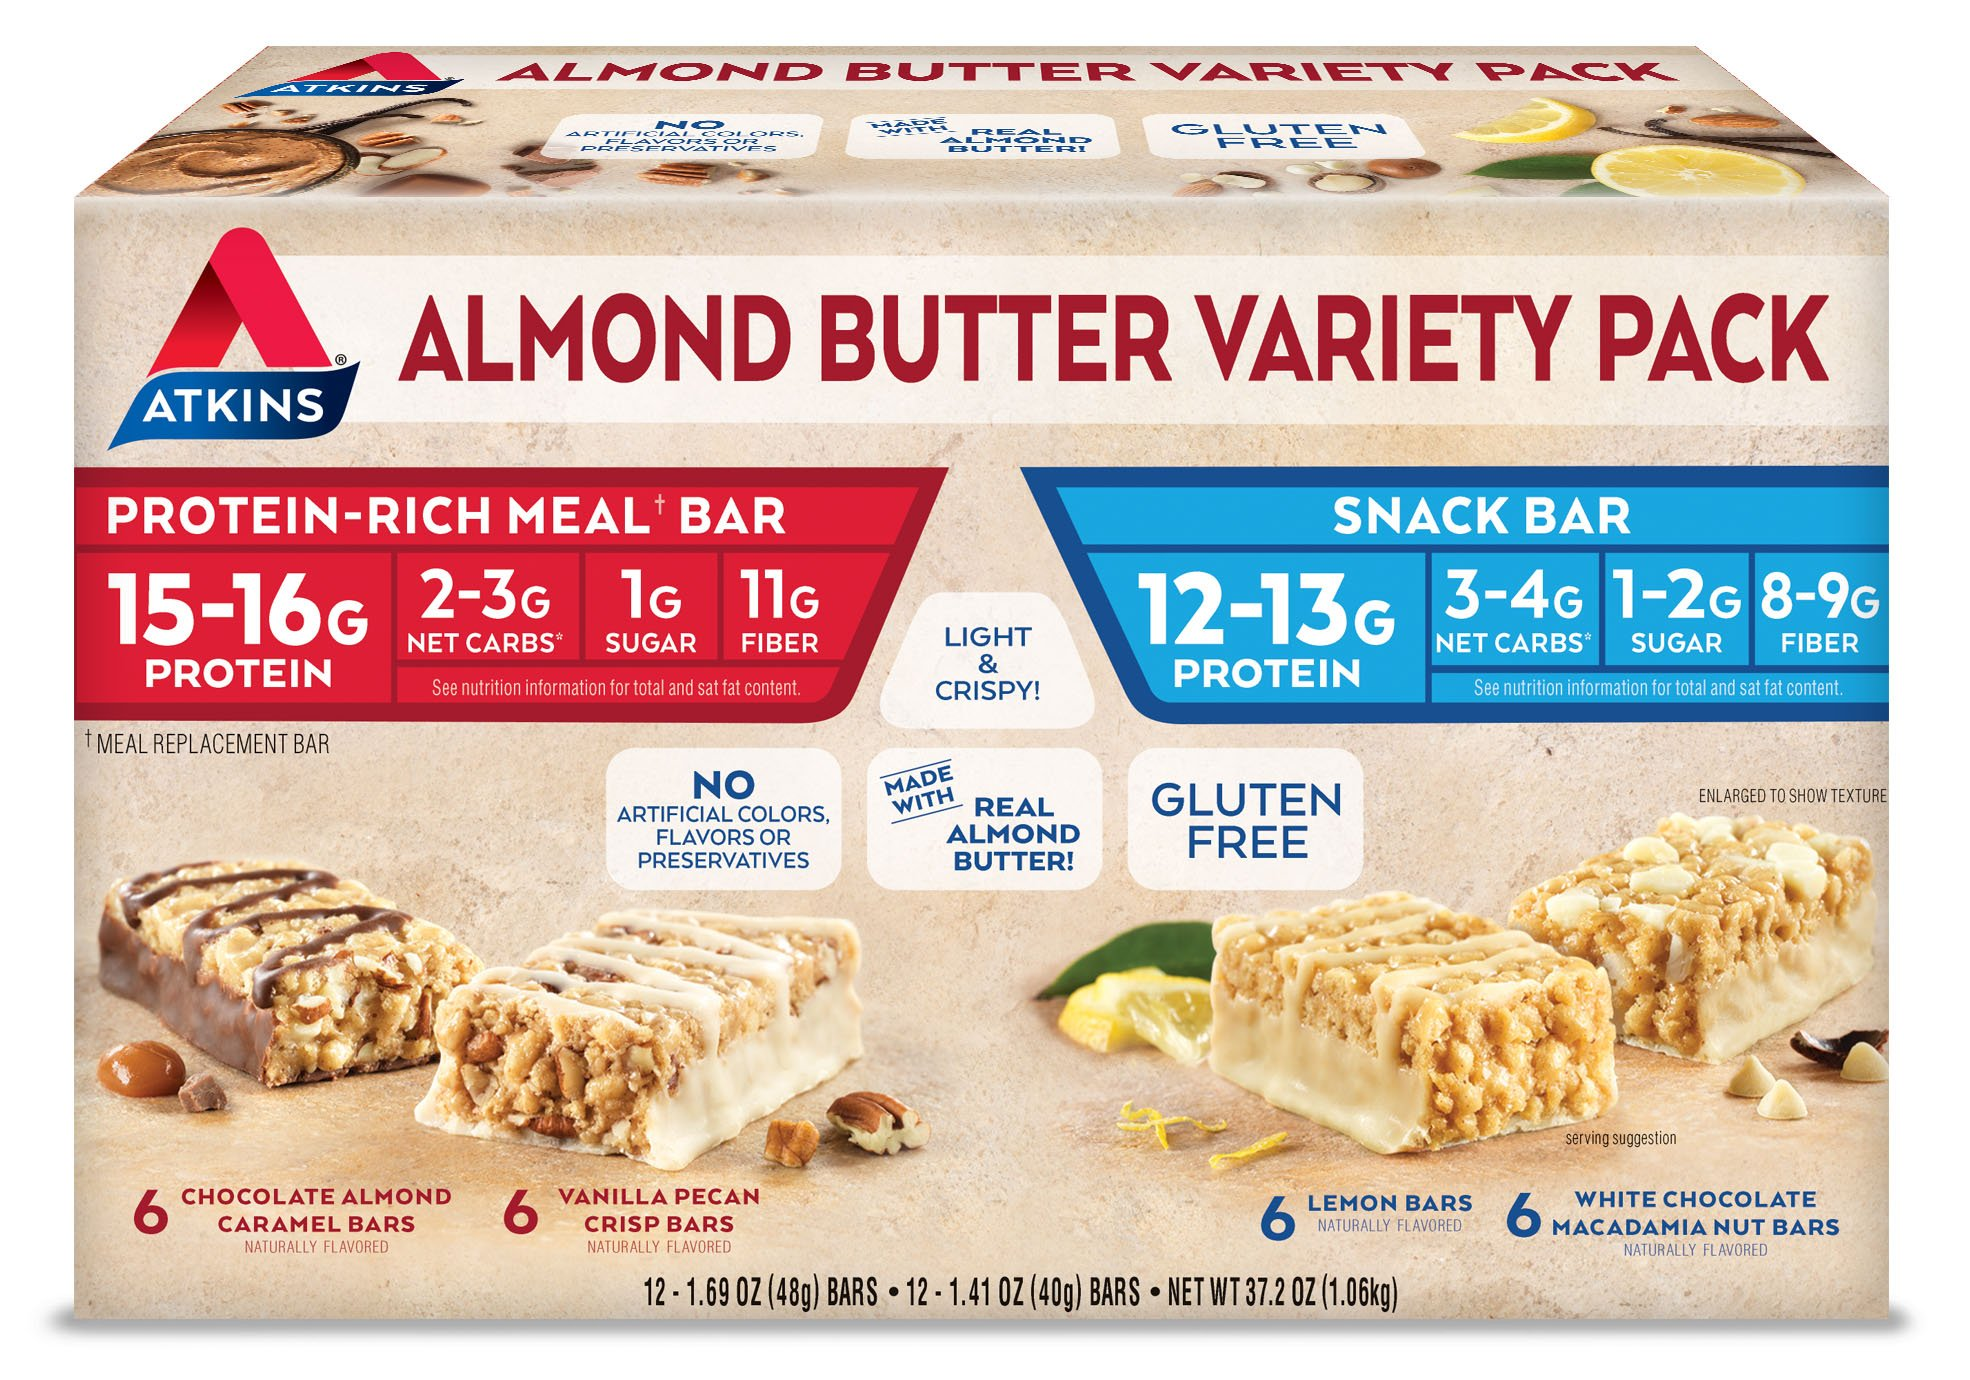 Atkins Almond Butter Meal and Snack Bar Variety Pack. Light and Crispy Protein & Fiber Bars Made with Real Almond Butter (4 Flavors, 24 Bars). by Atkins